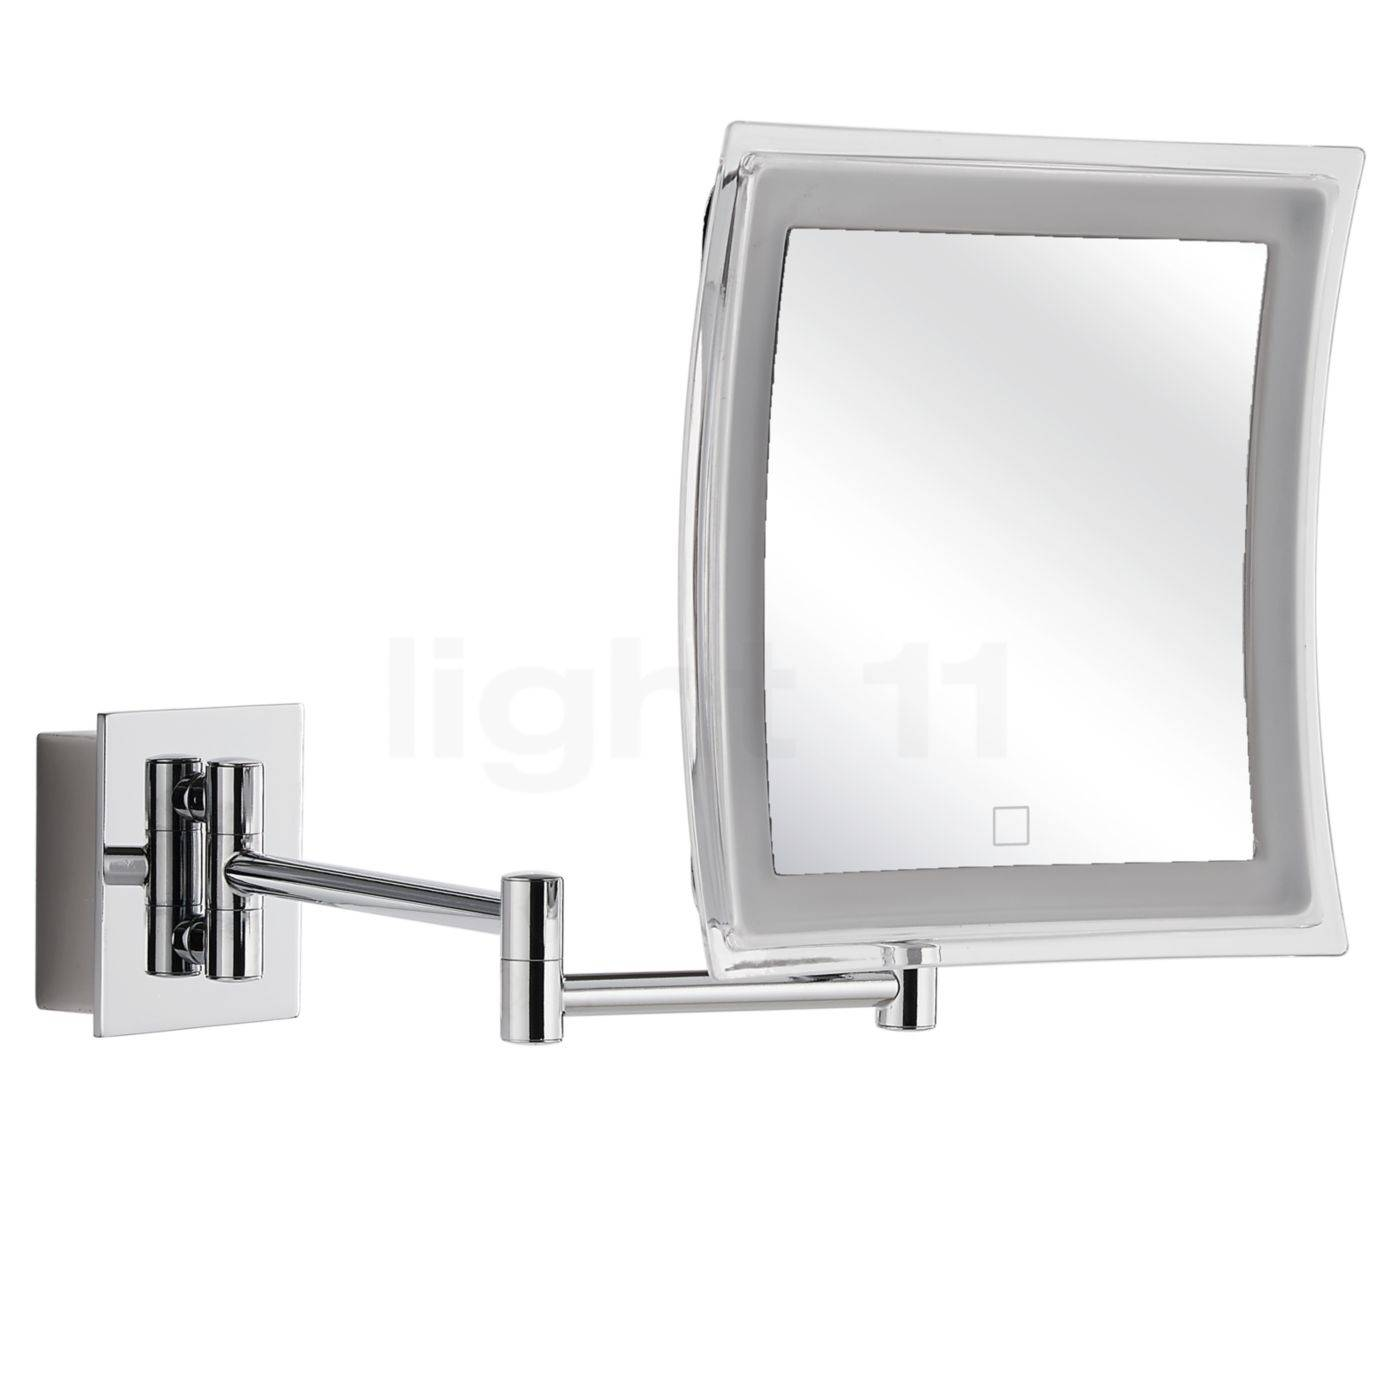 Decor Walther BS 84 Touch Miroir de maquillage mural LED, chrome brillant